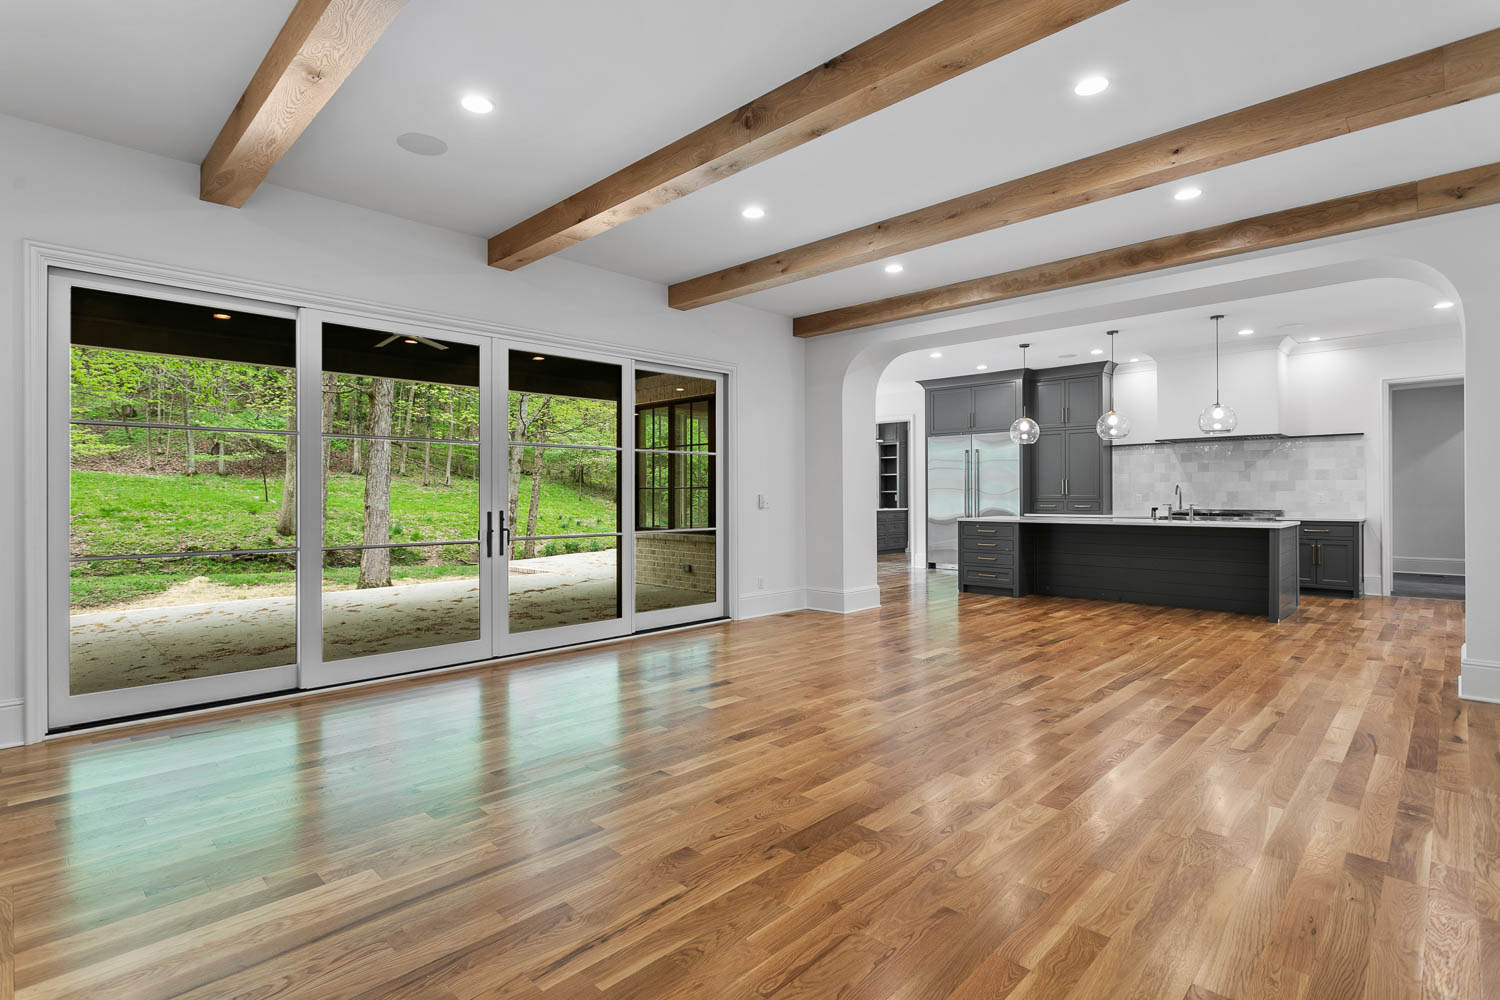 home renovation that includes a living room addition by donnelly timmons in nashville tn